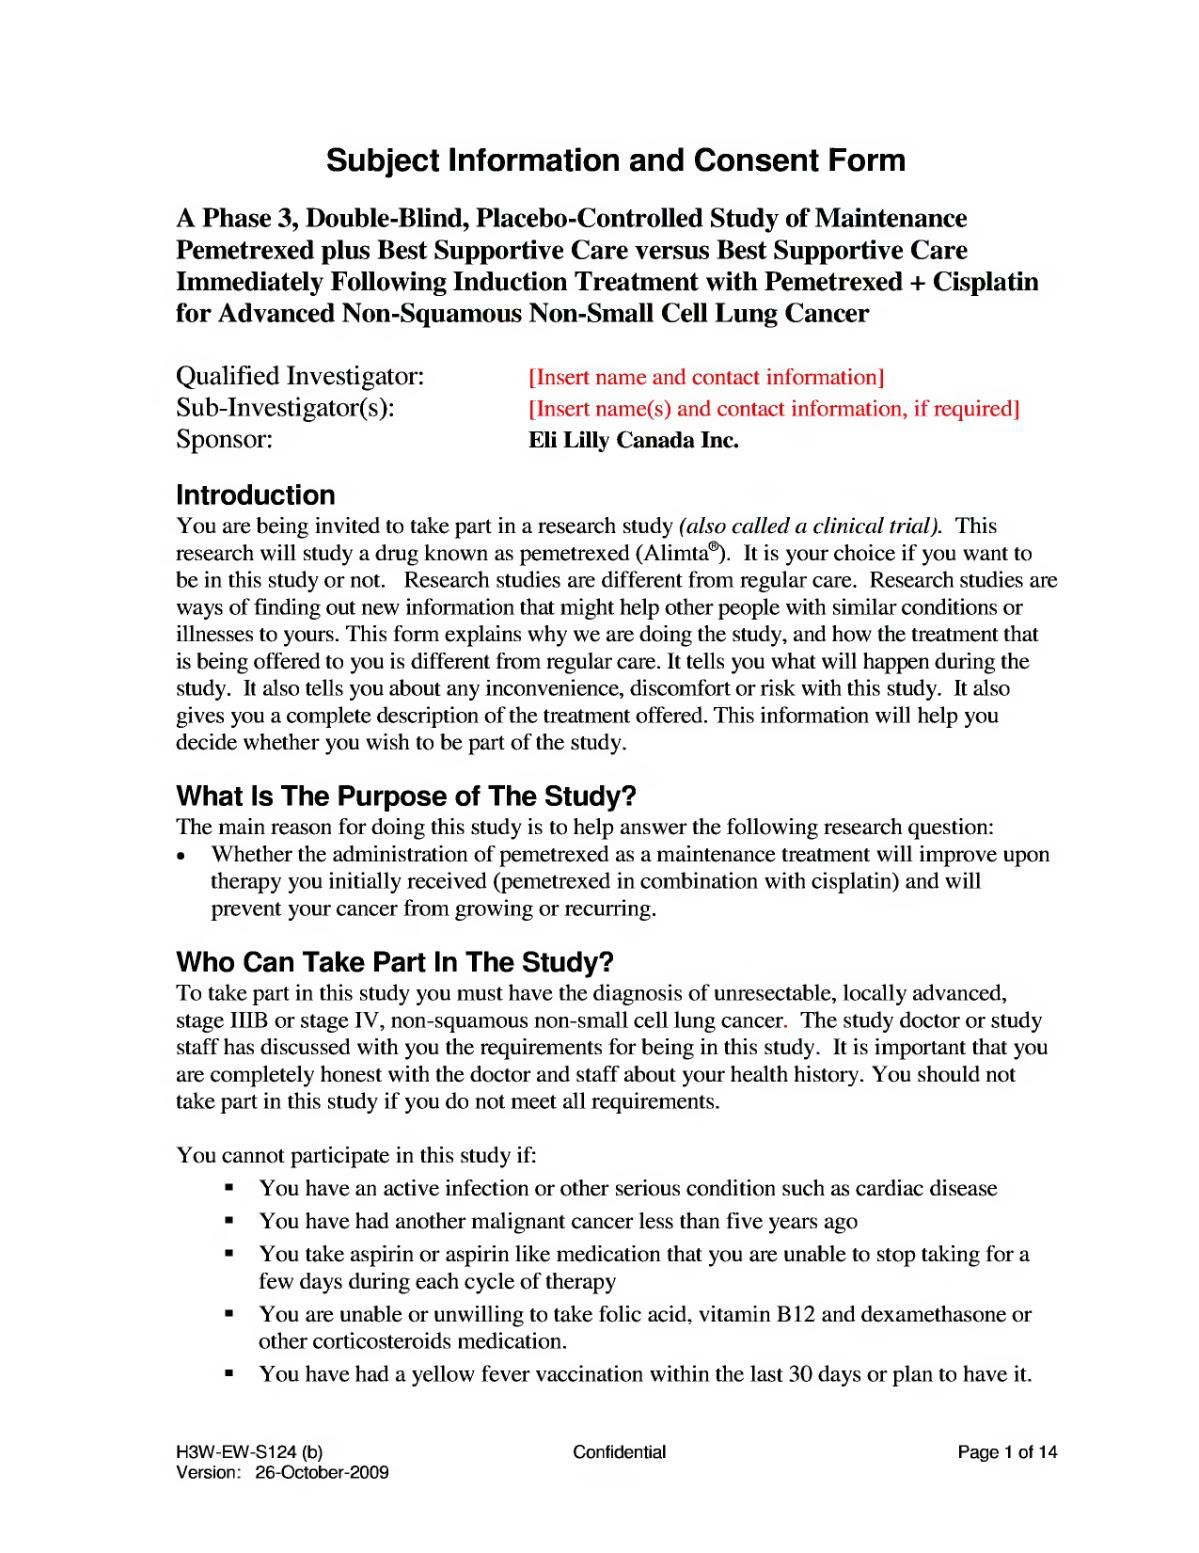 007 Wondrou Medical Consent Form Template Image  Templates Informed Sample South Africa TreatmentFull